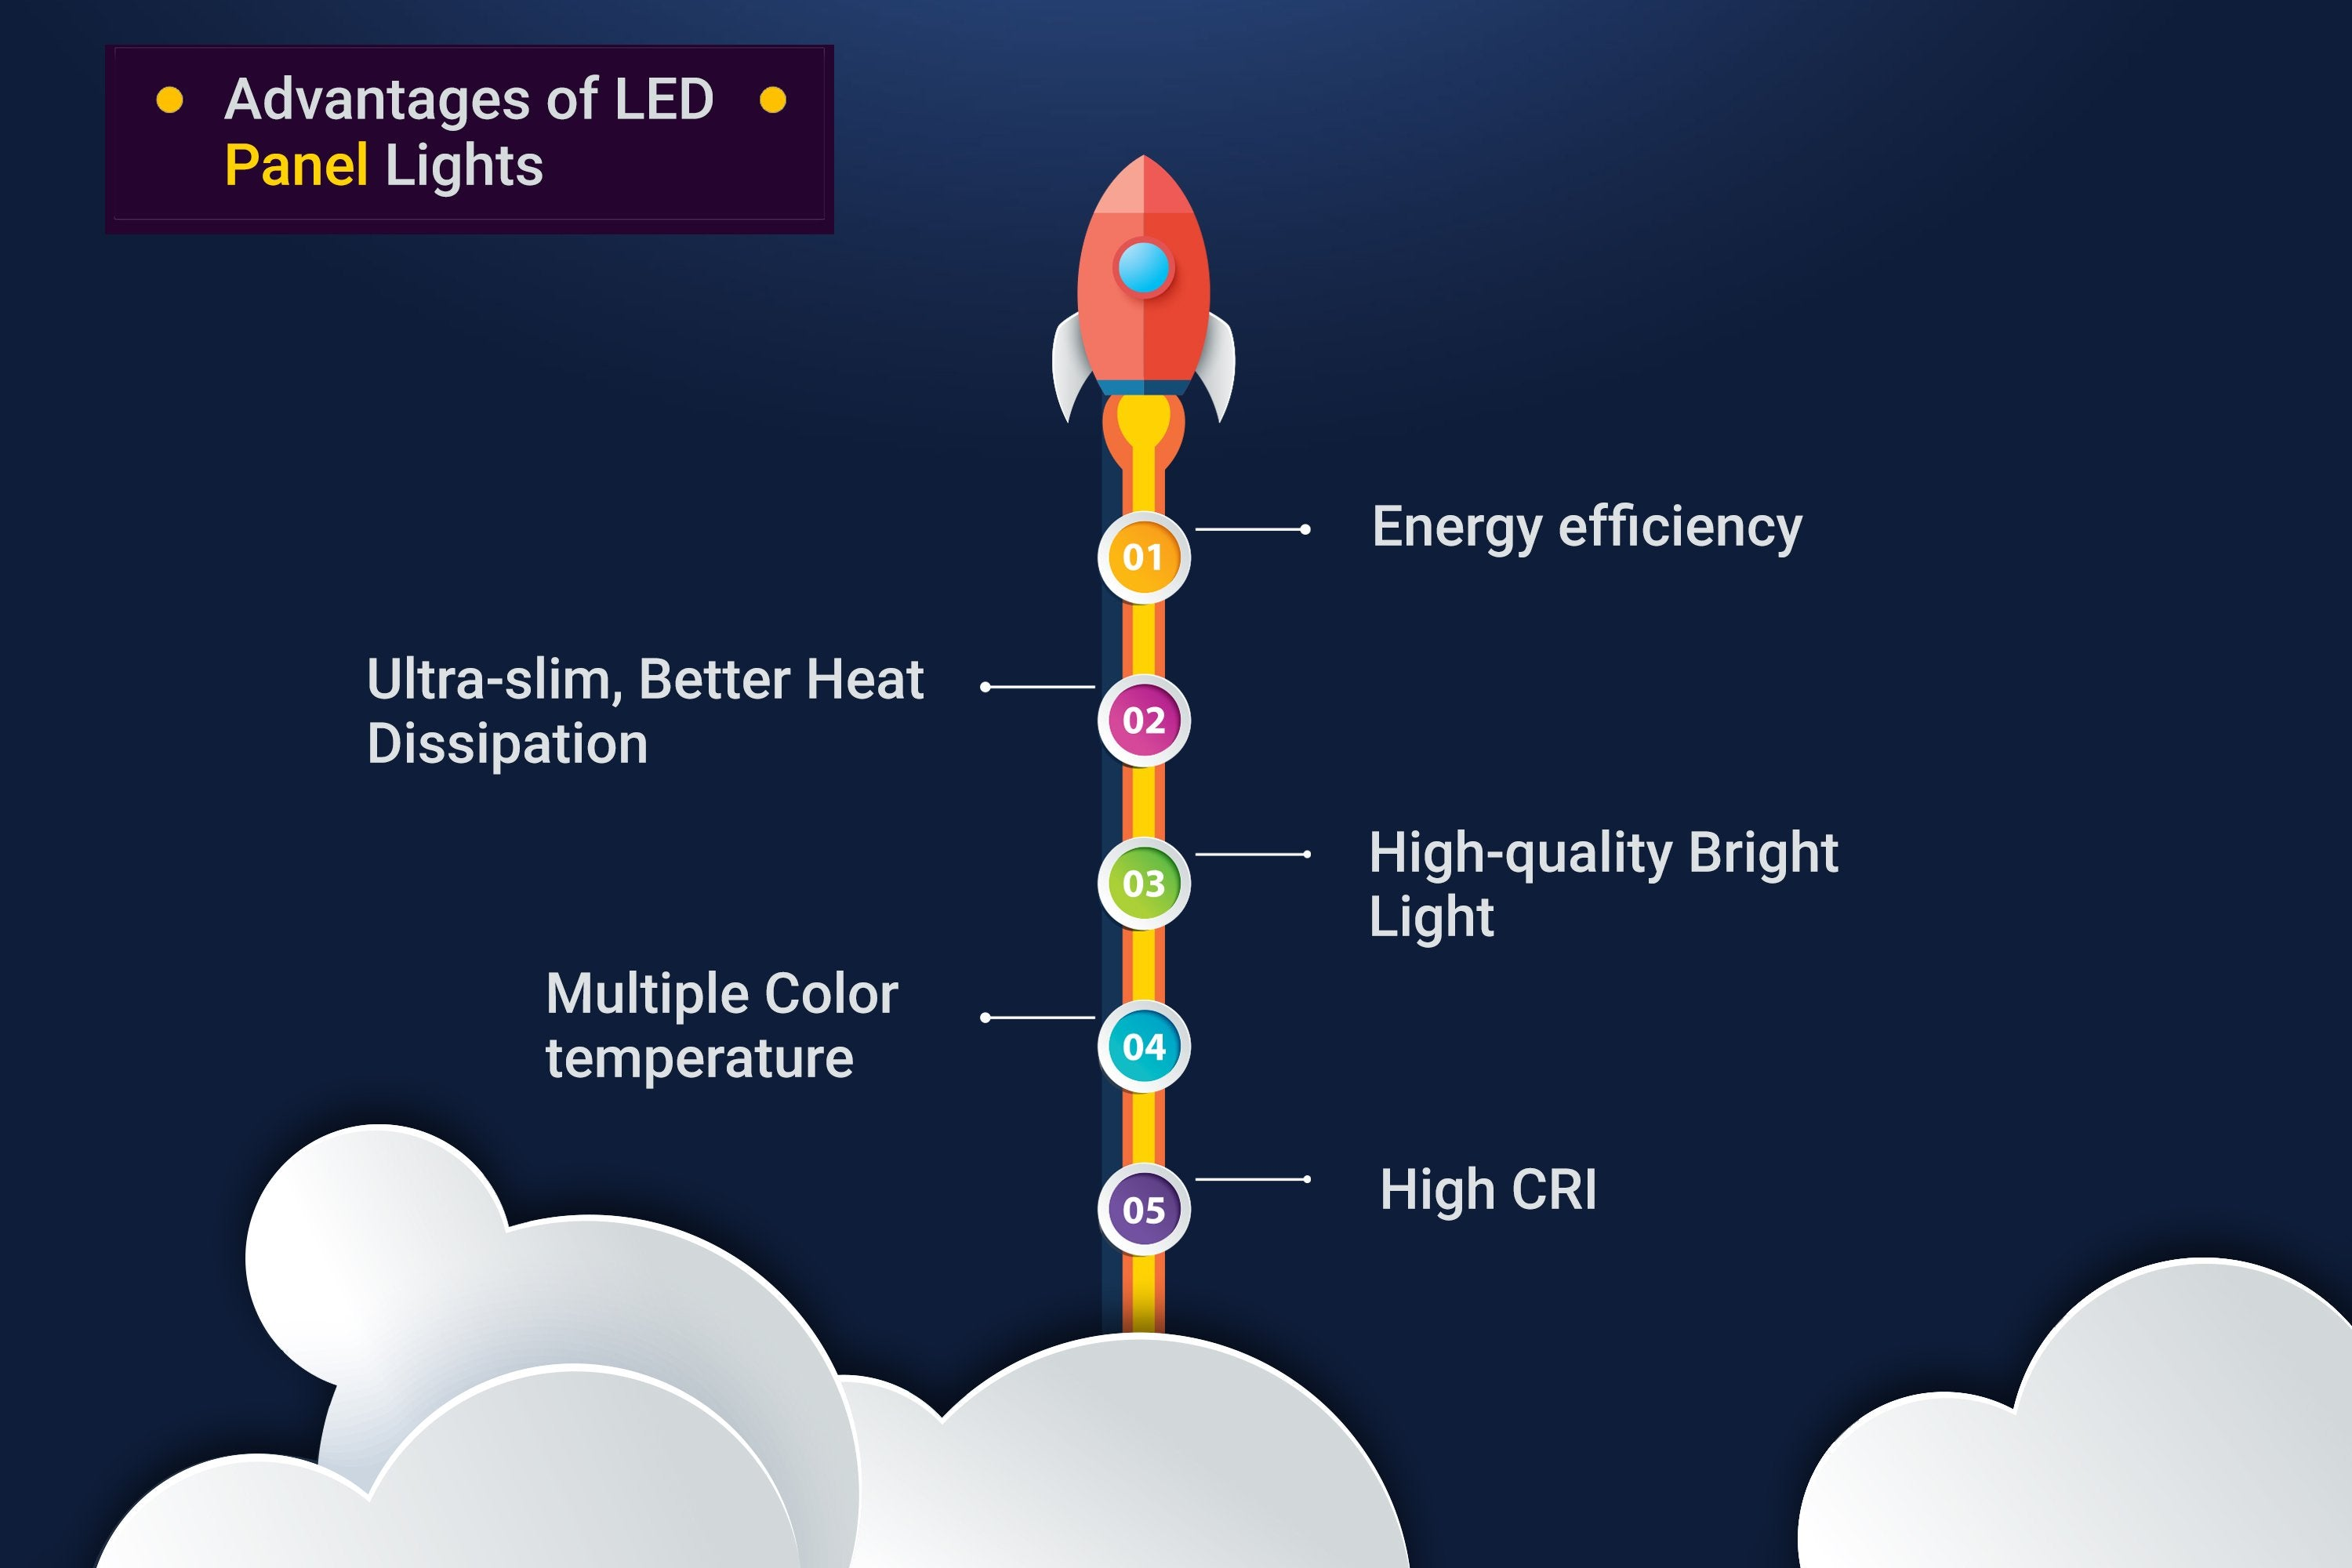 Advantages of LED Panel lights